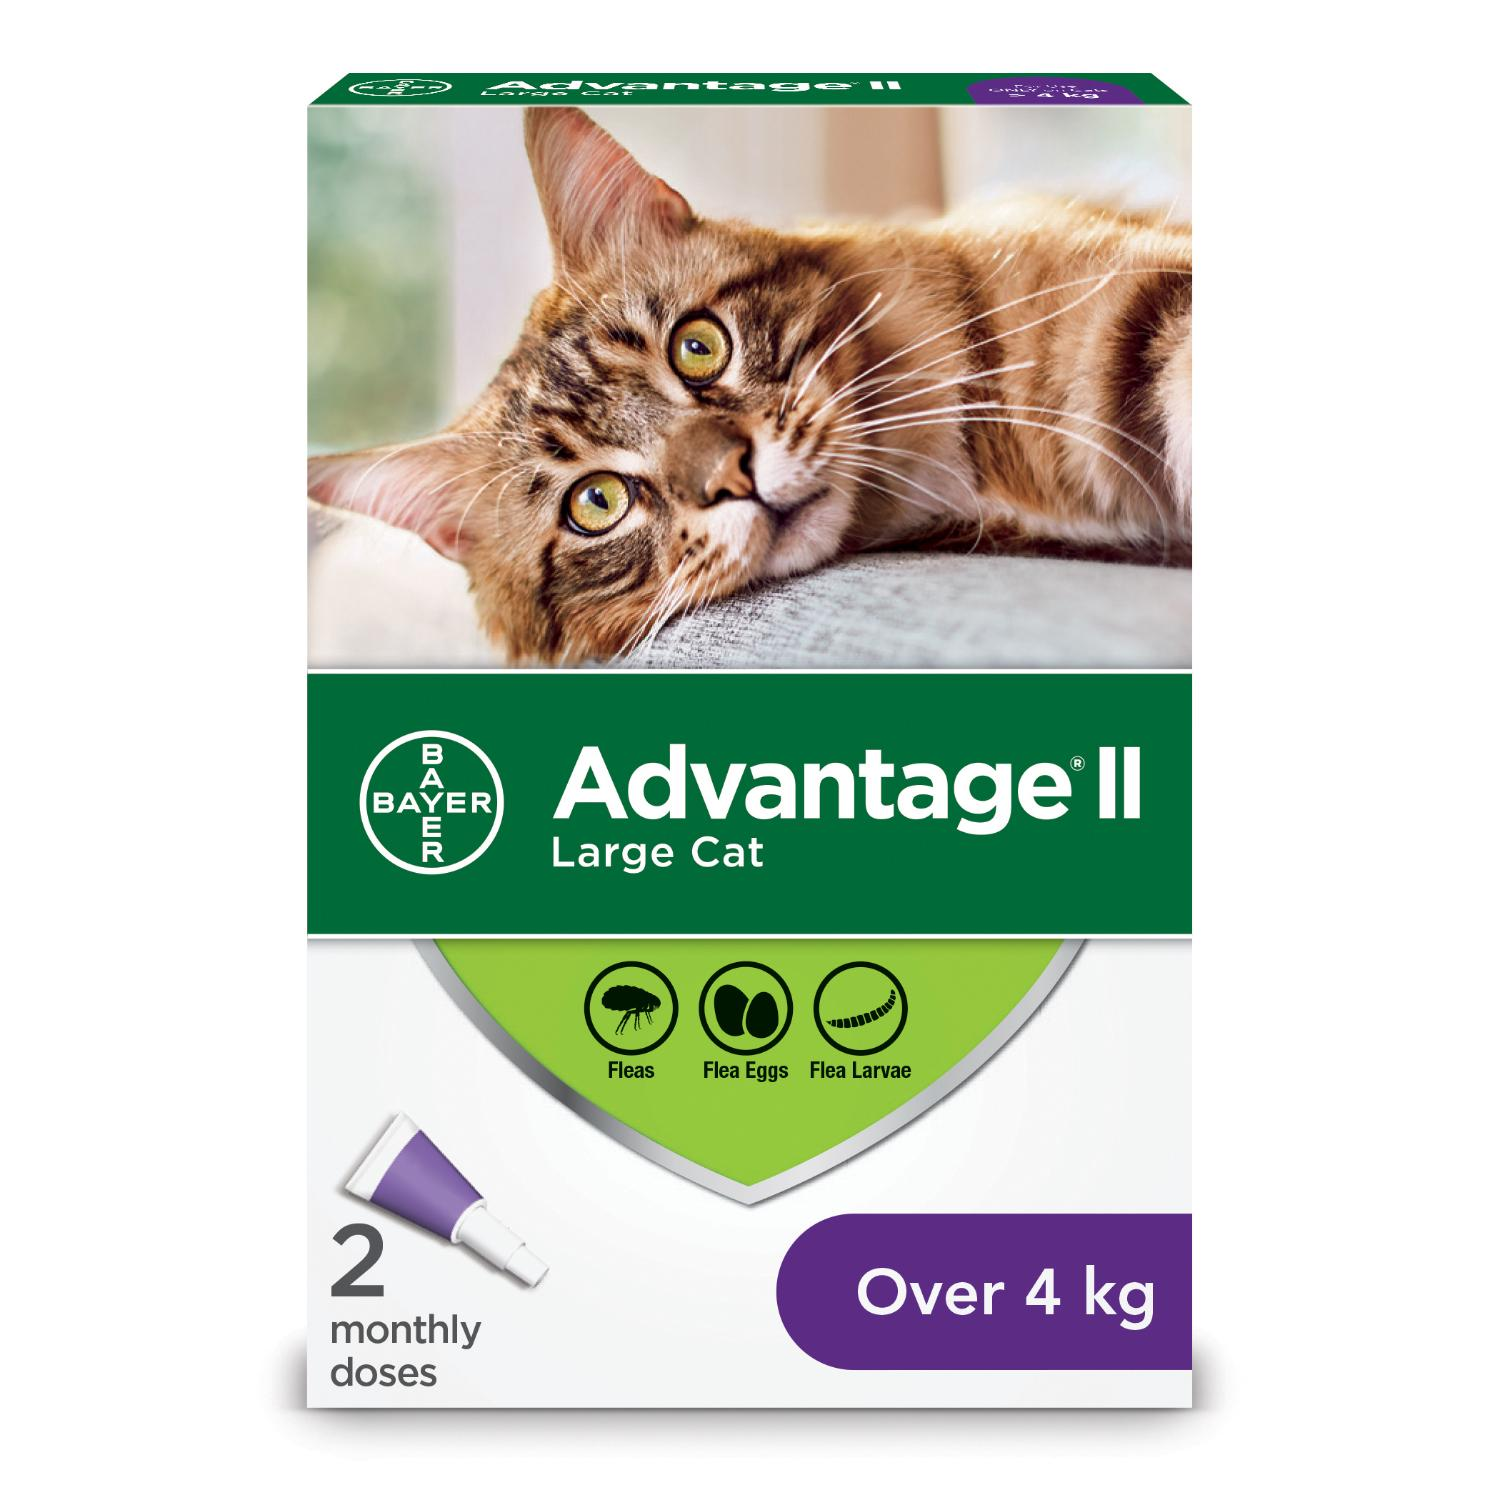 Bayer Advantage II Flea Protection for Large Cats over 4-kg, 2-pk